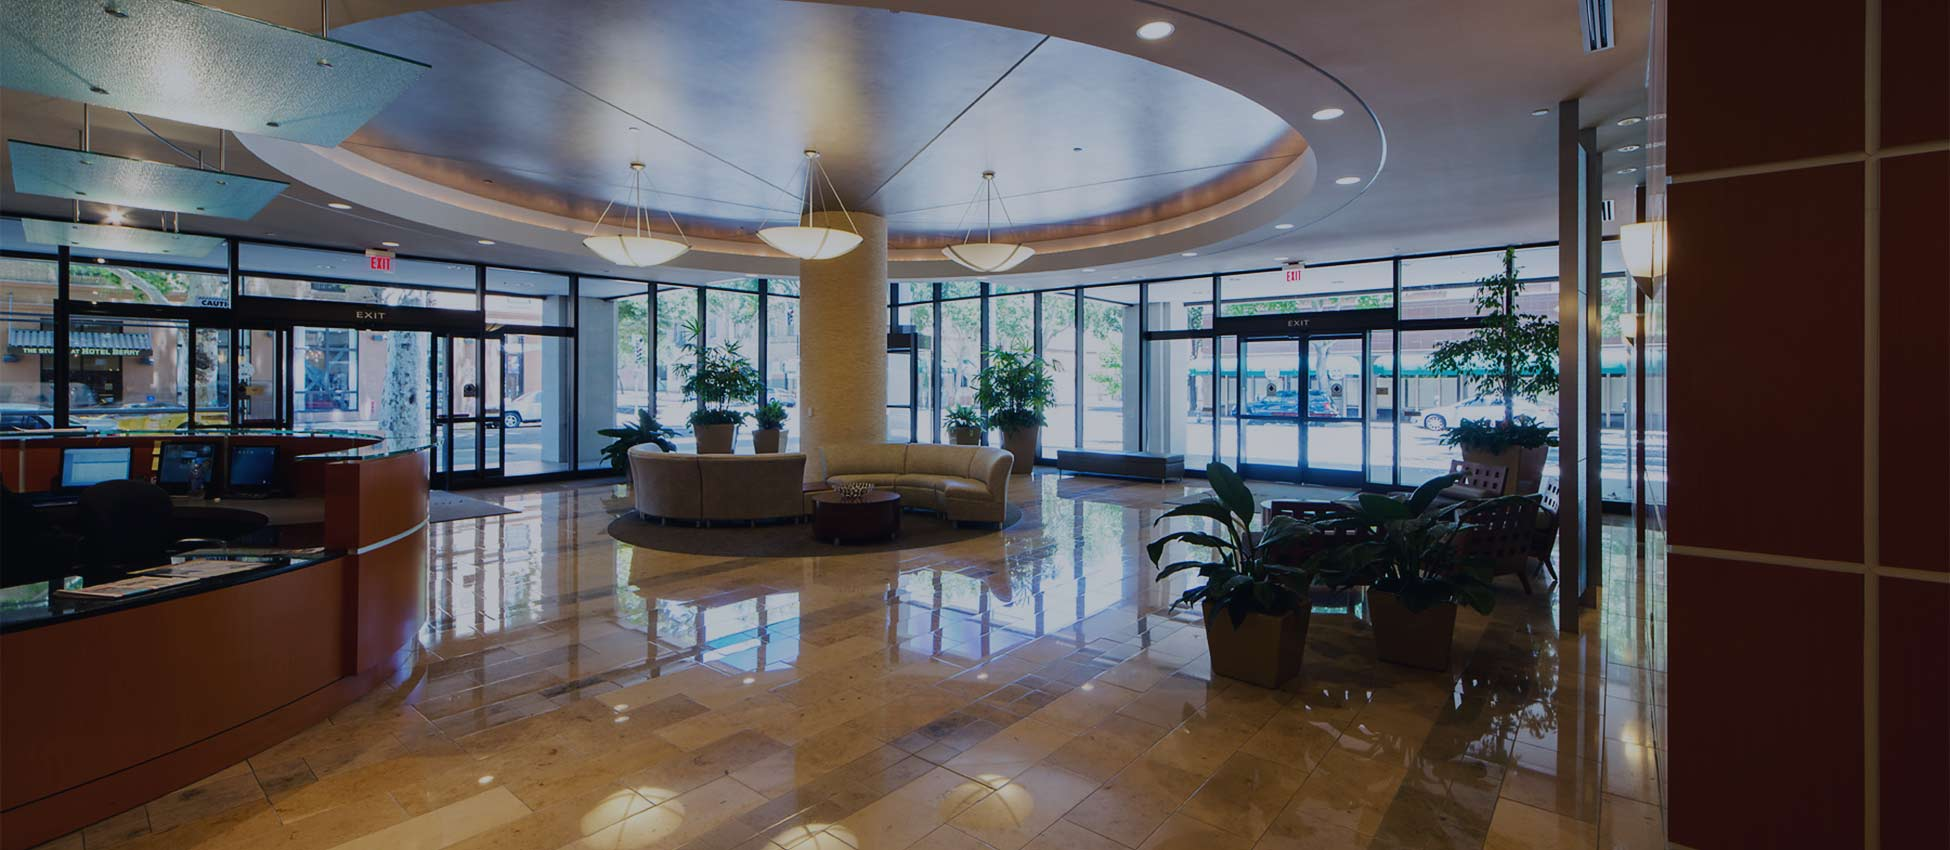 pacific-workplaces-sacramento-capitol-lobby